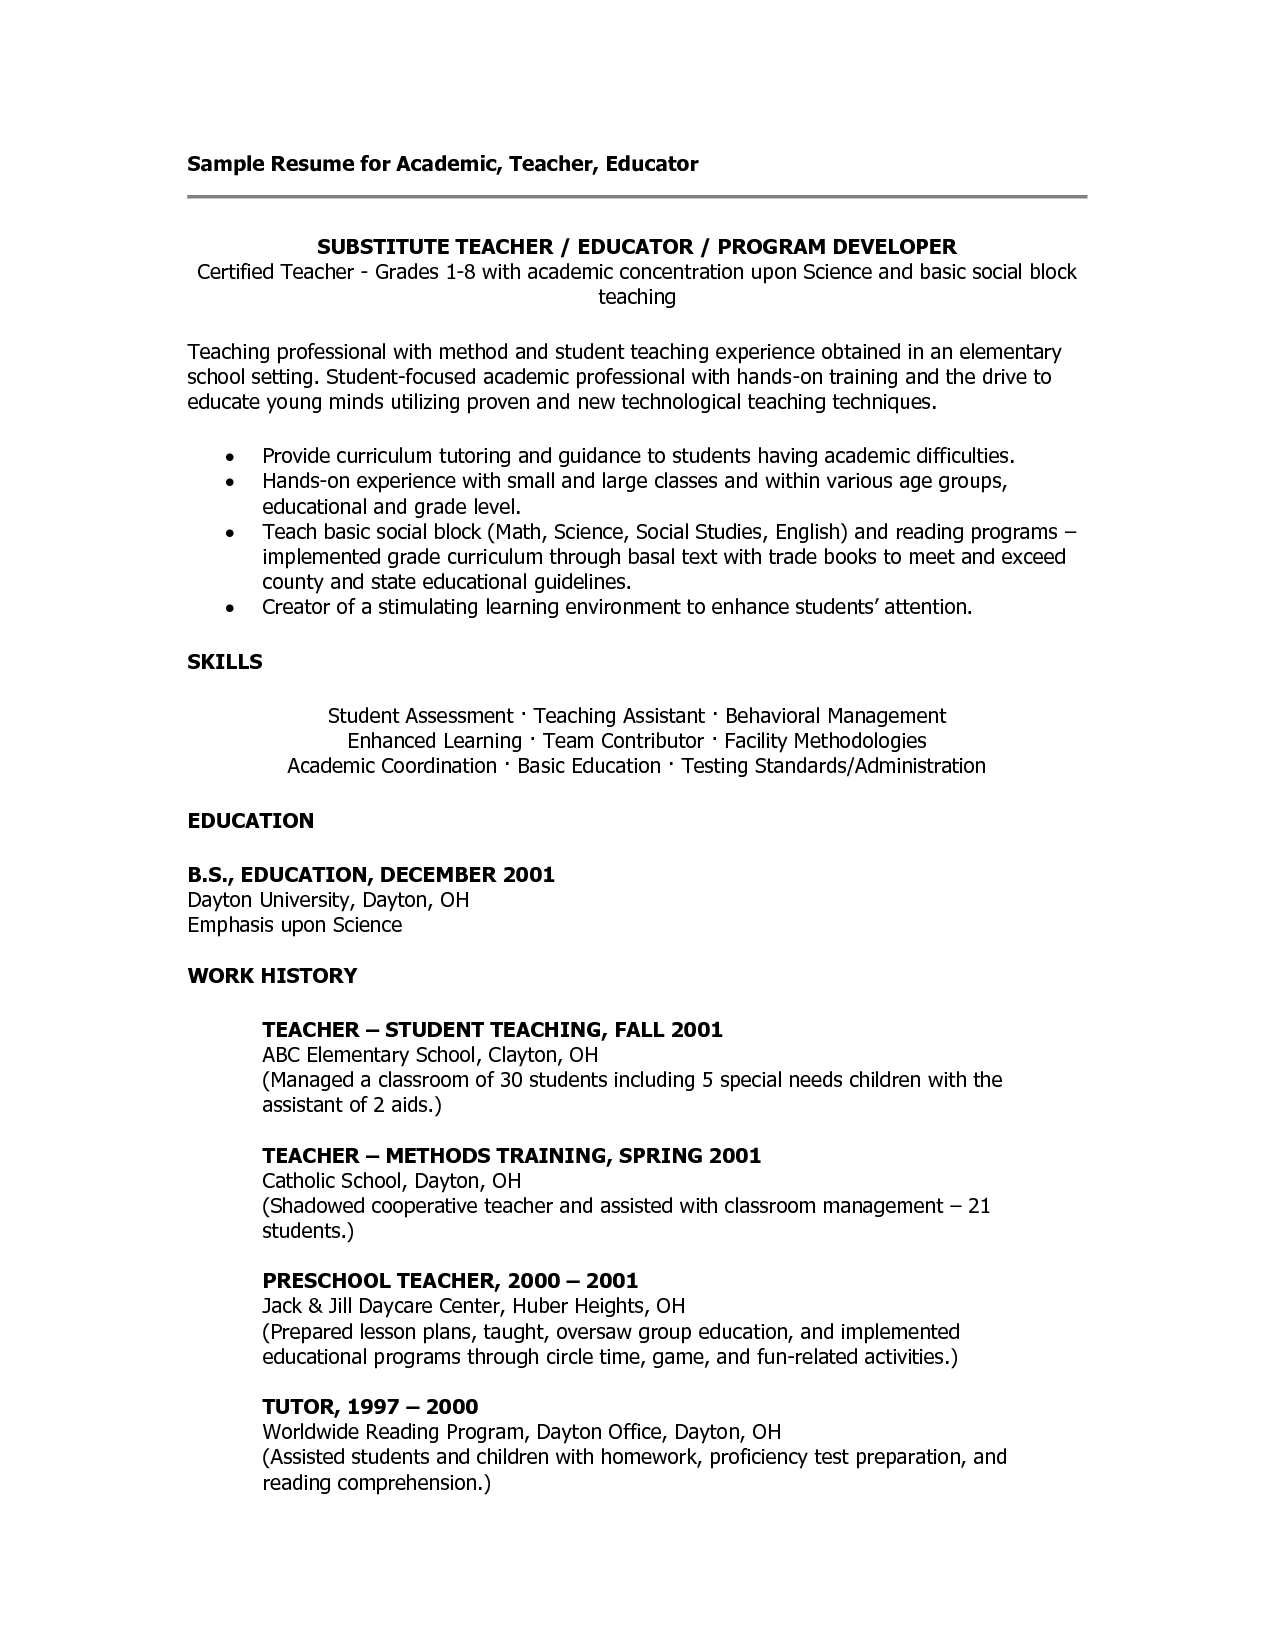 sample teacher resumes Substitute Teacher Resume FCS Pinterest